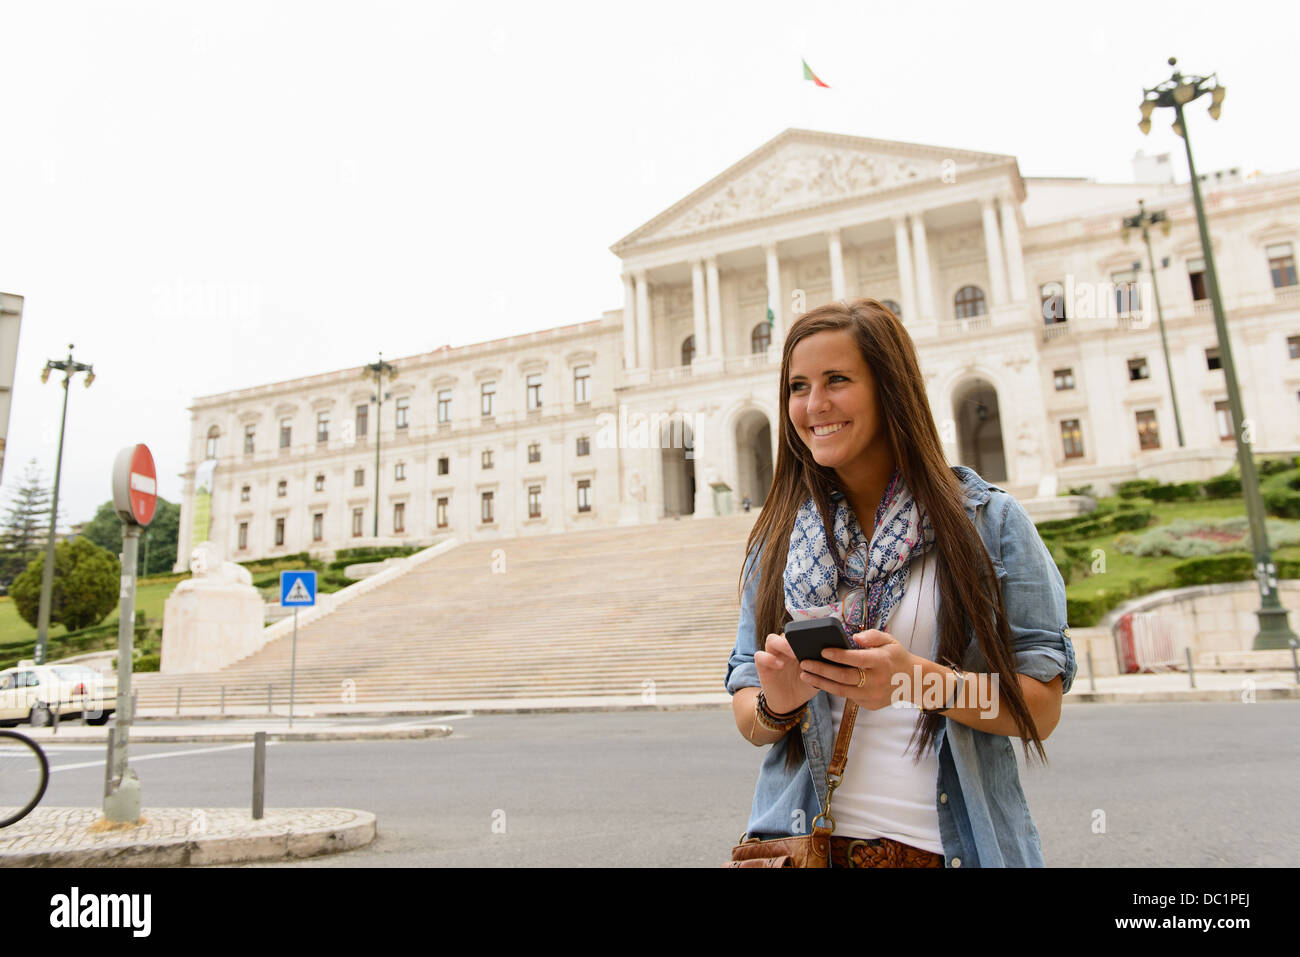 Female tourist using smartphone outside Palicio de Sao Bento, Lisbon, Portugal - Stock Image